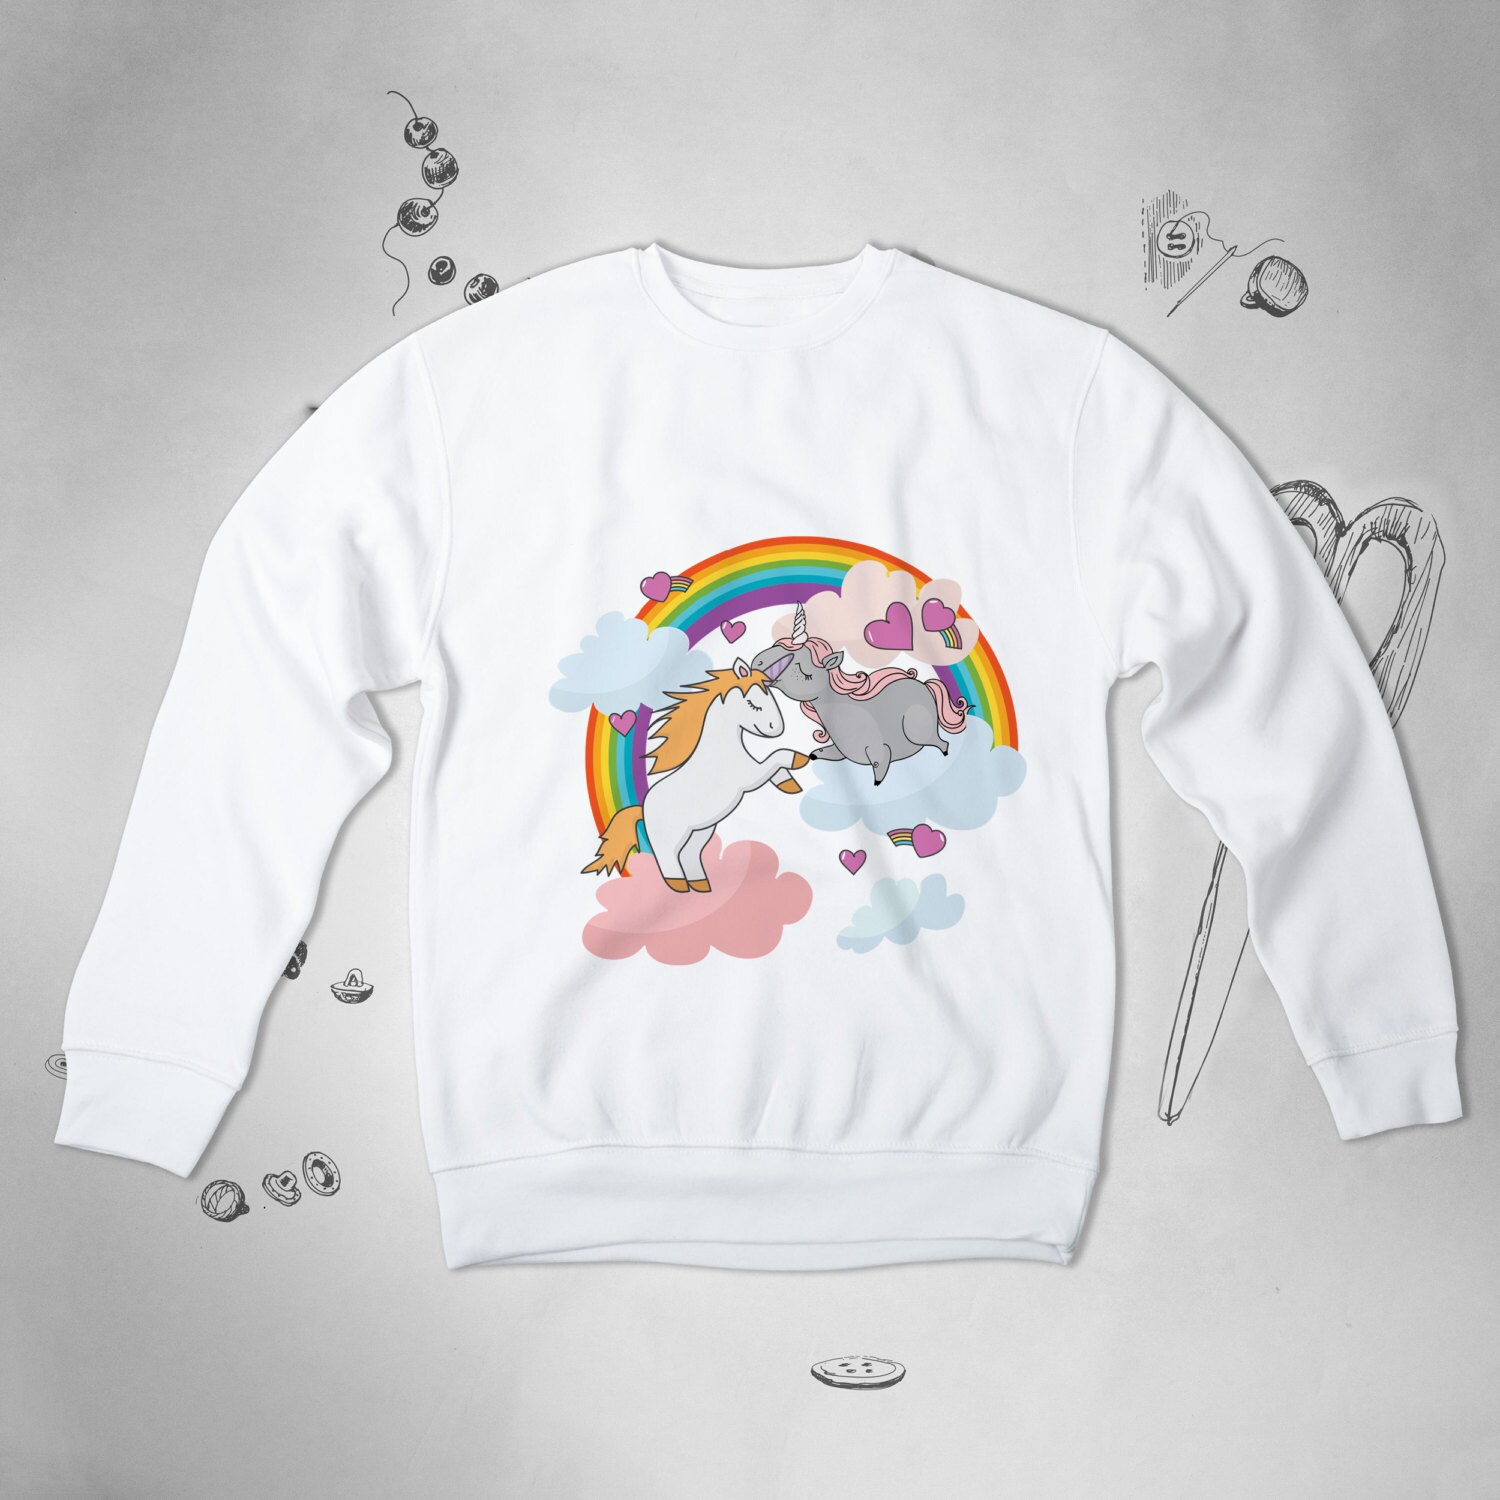 Preferenza Unicorn Sweatshirt Tumblr Sweater For Woman Sweatshirt Cute UO62